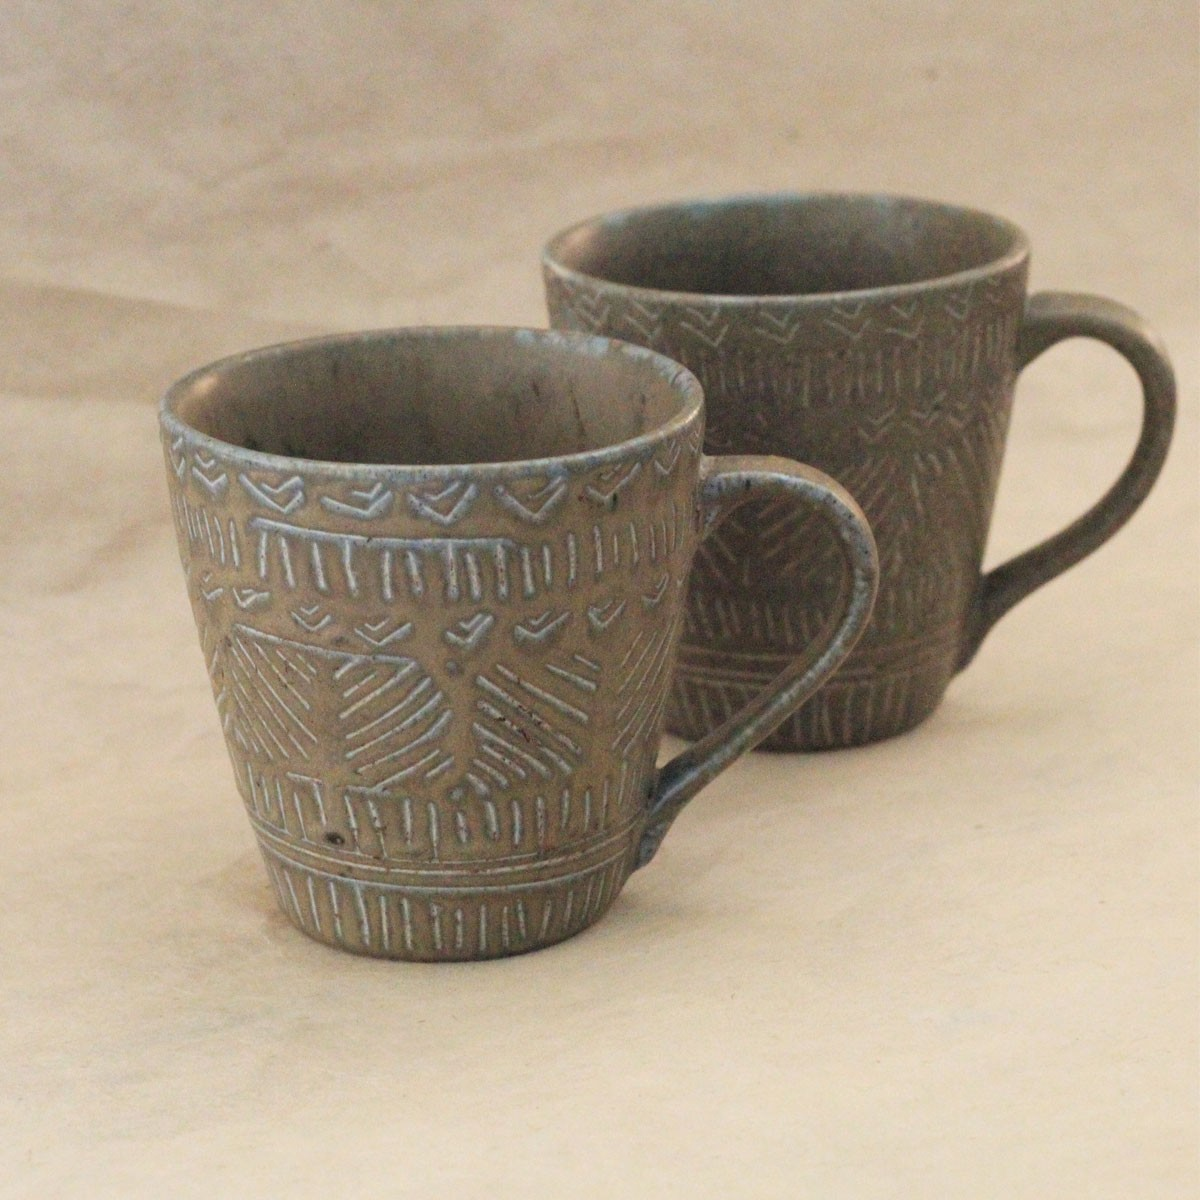 Etched Ceramic Cups (Set of 2)